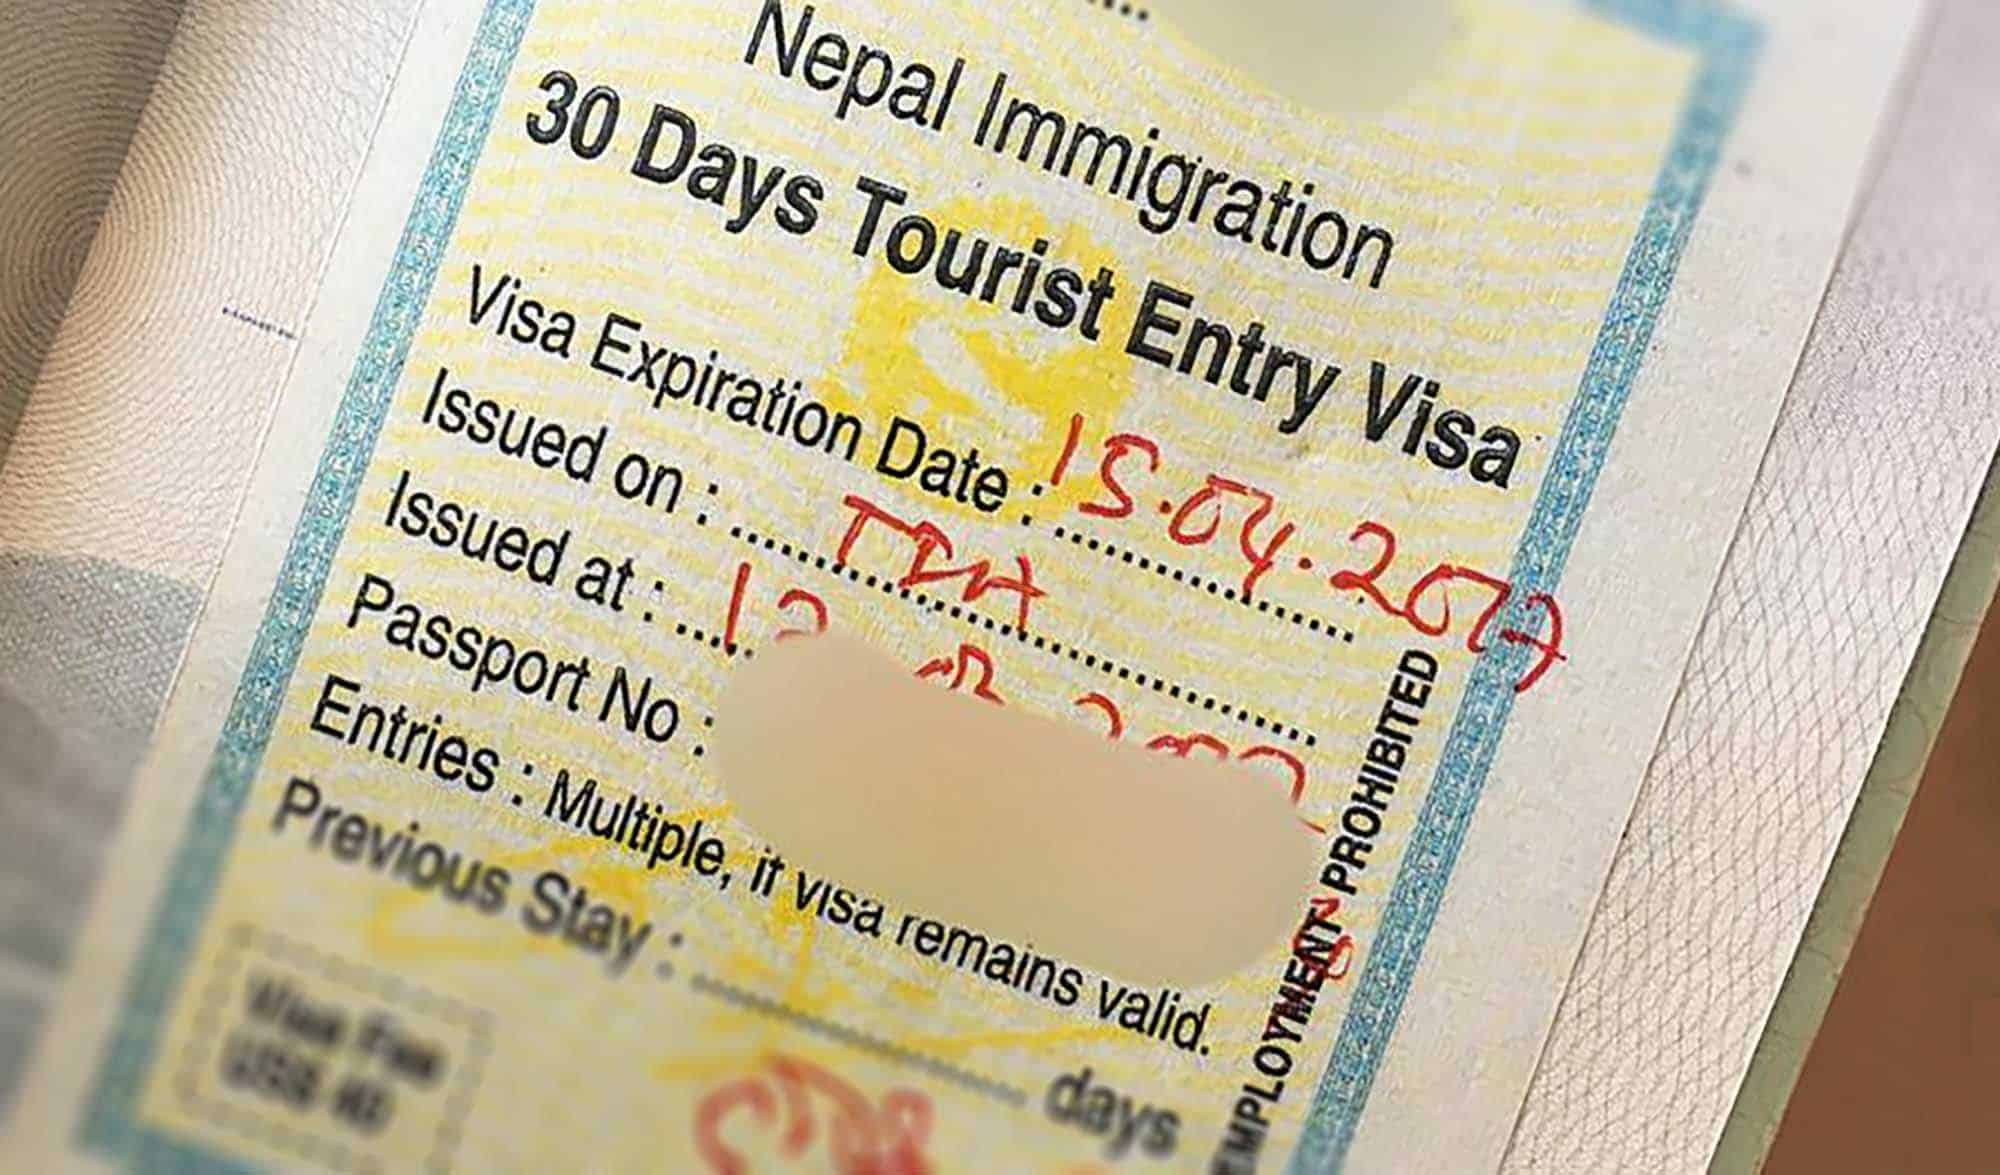 Nepal on launched a digital visa system to replace its 45-year-old hand-written visa regime.